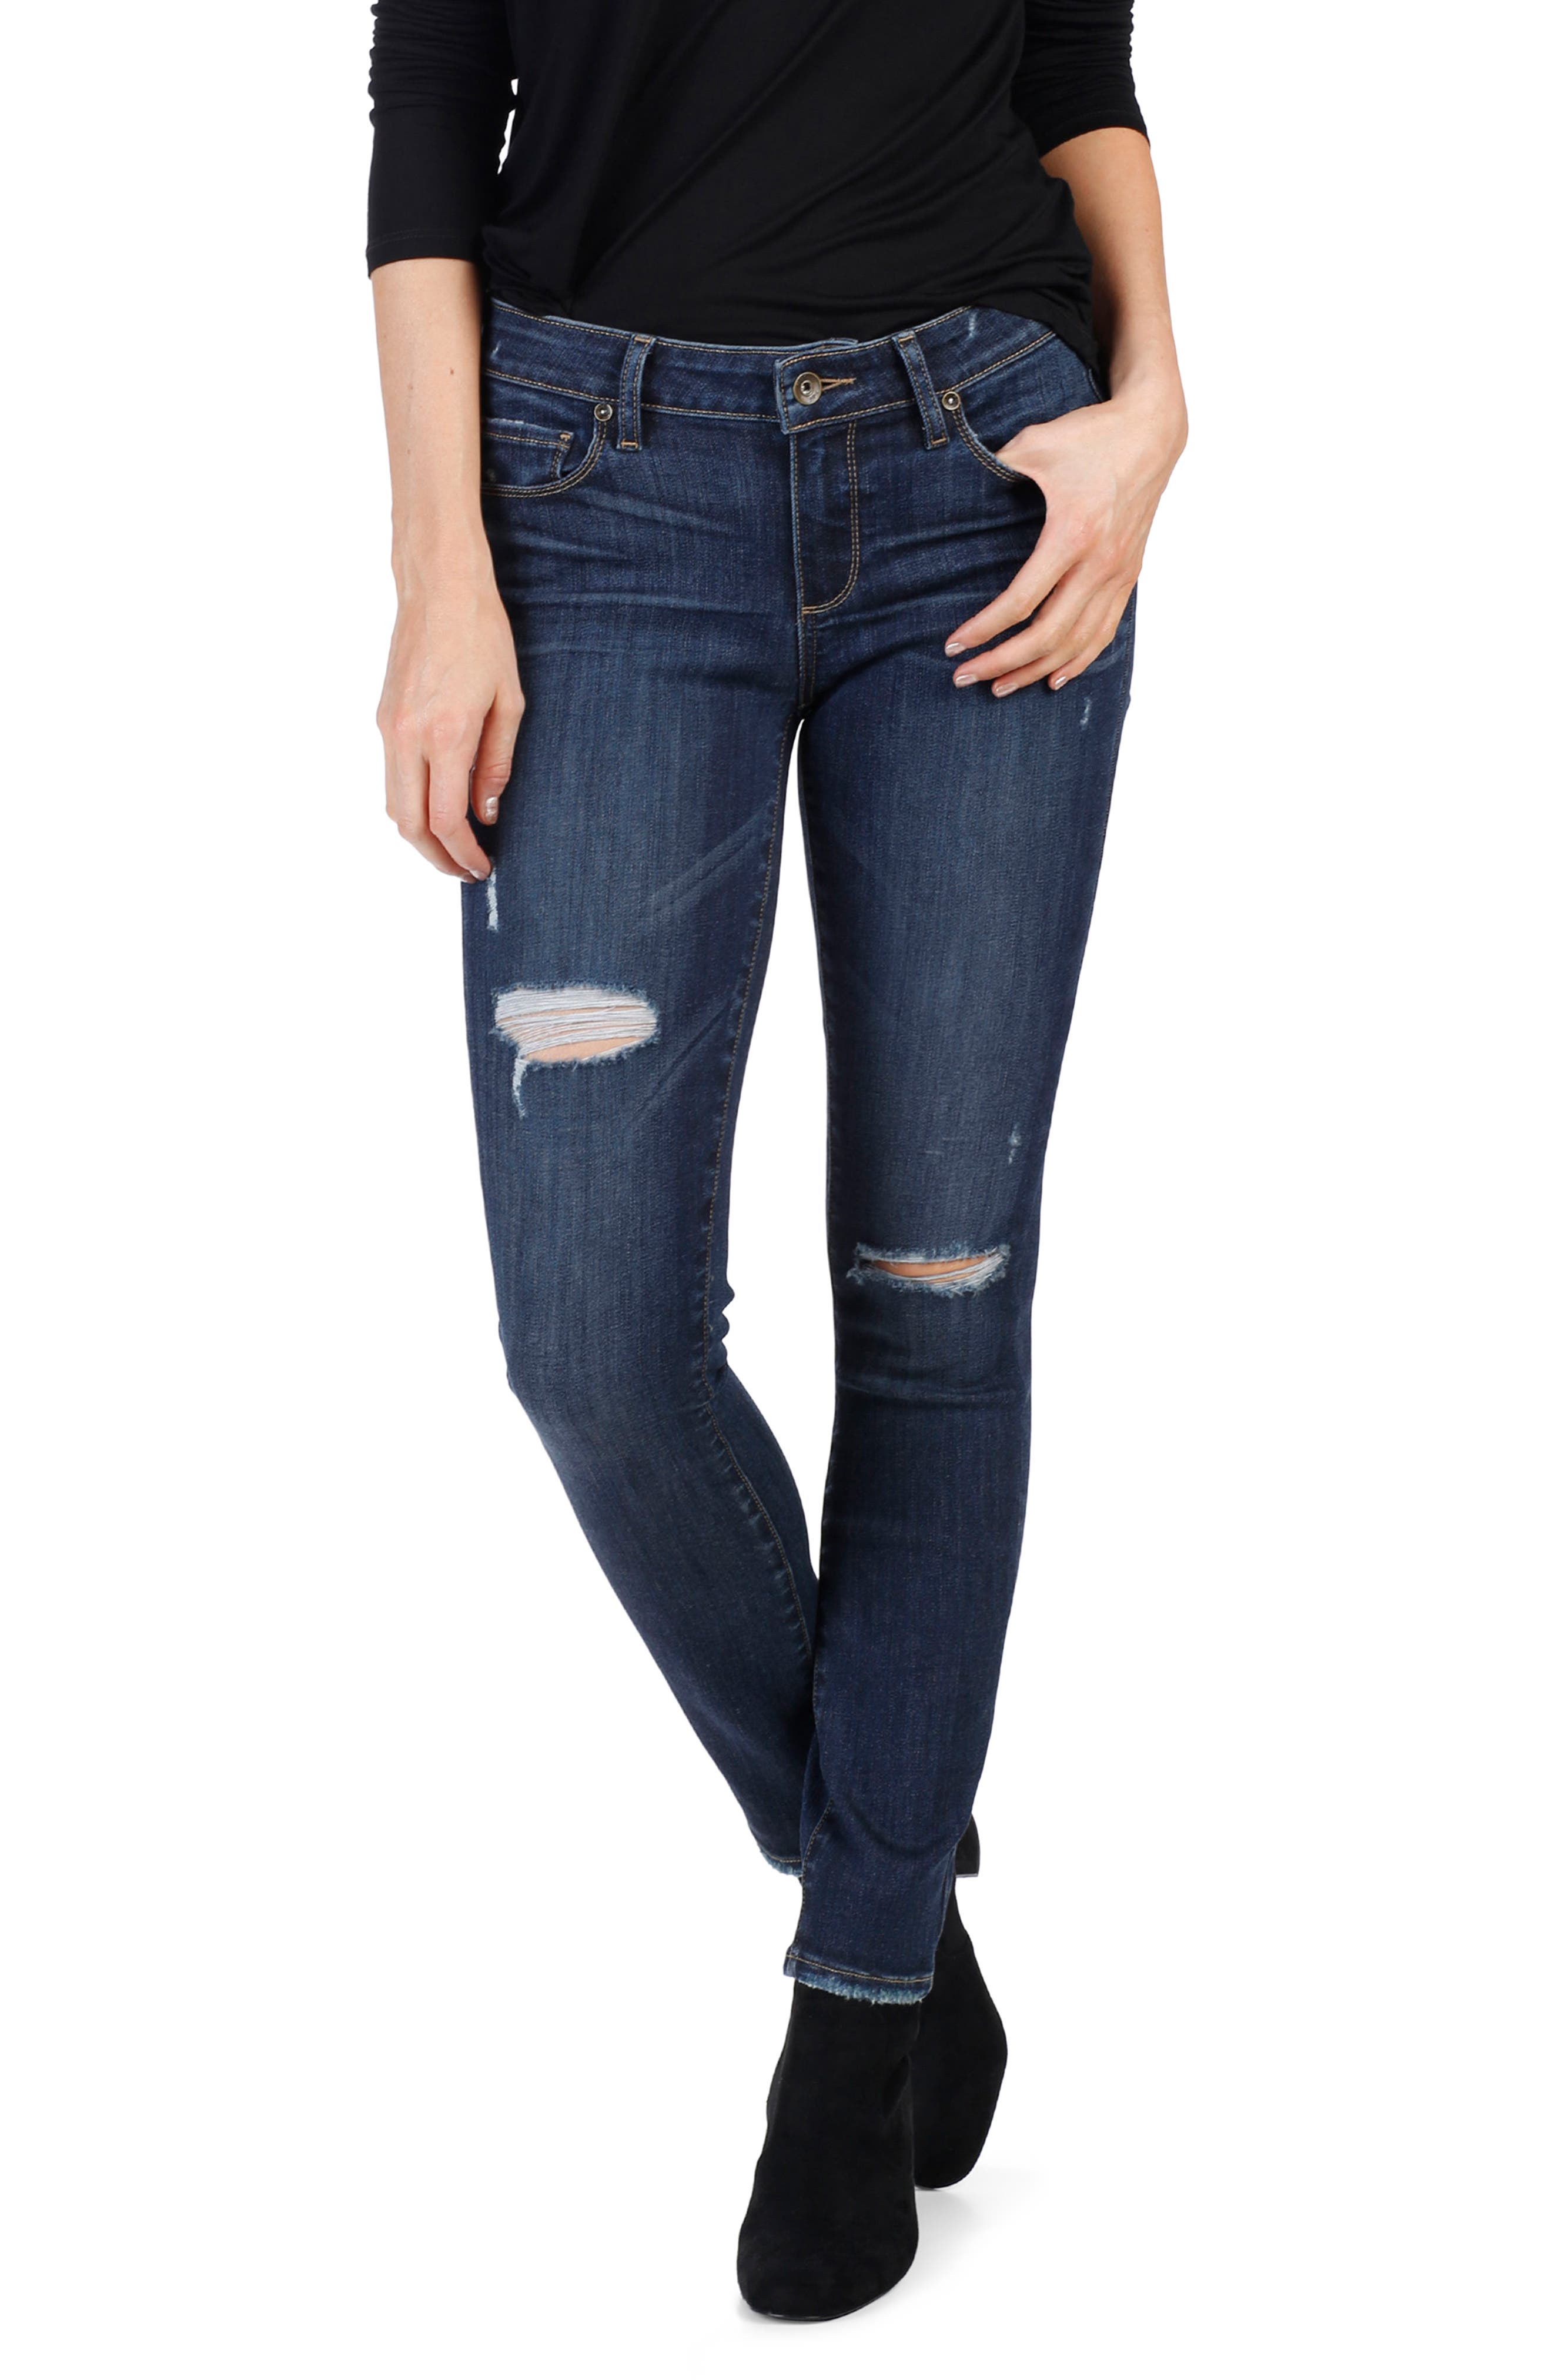 Main Image - PAIGE Transcend Vintage - Verdugo Ultra Skinny Jeans (Clearly Destructed)